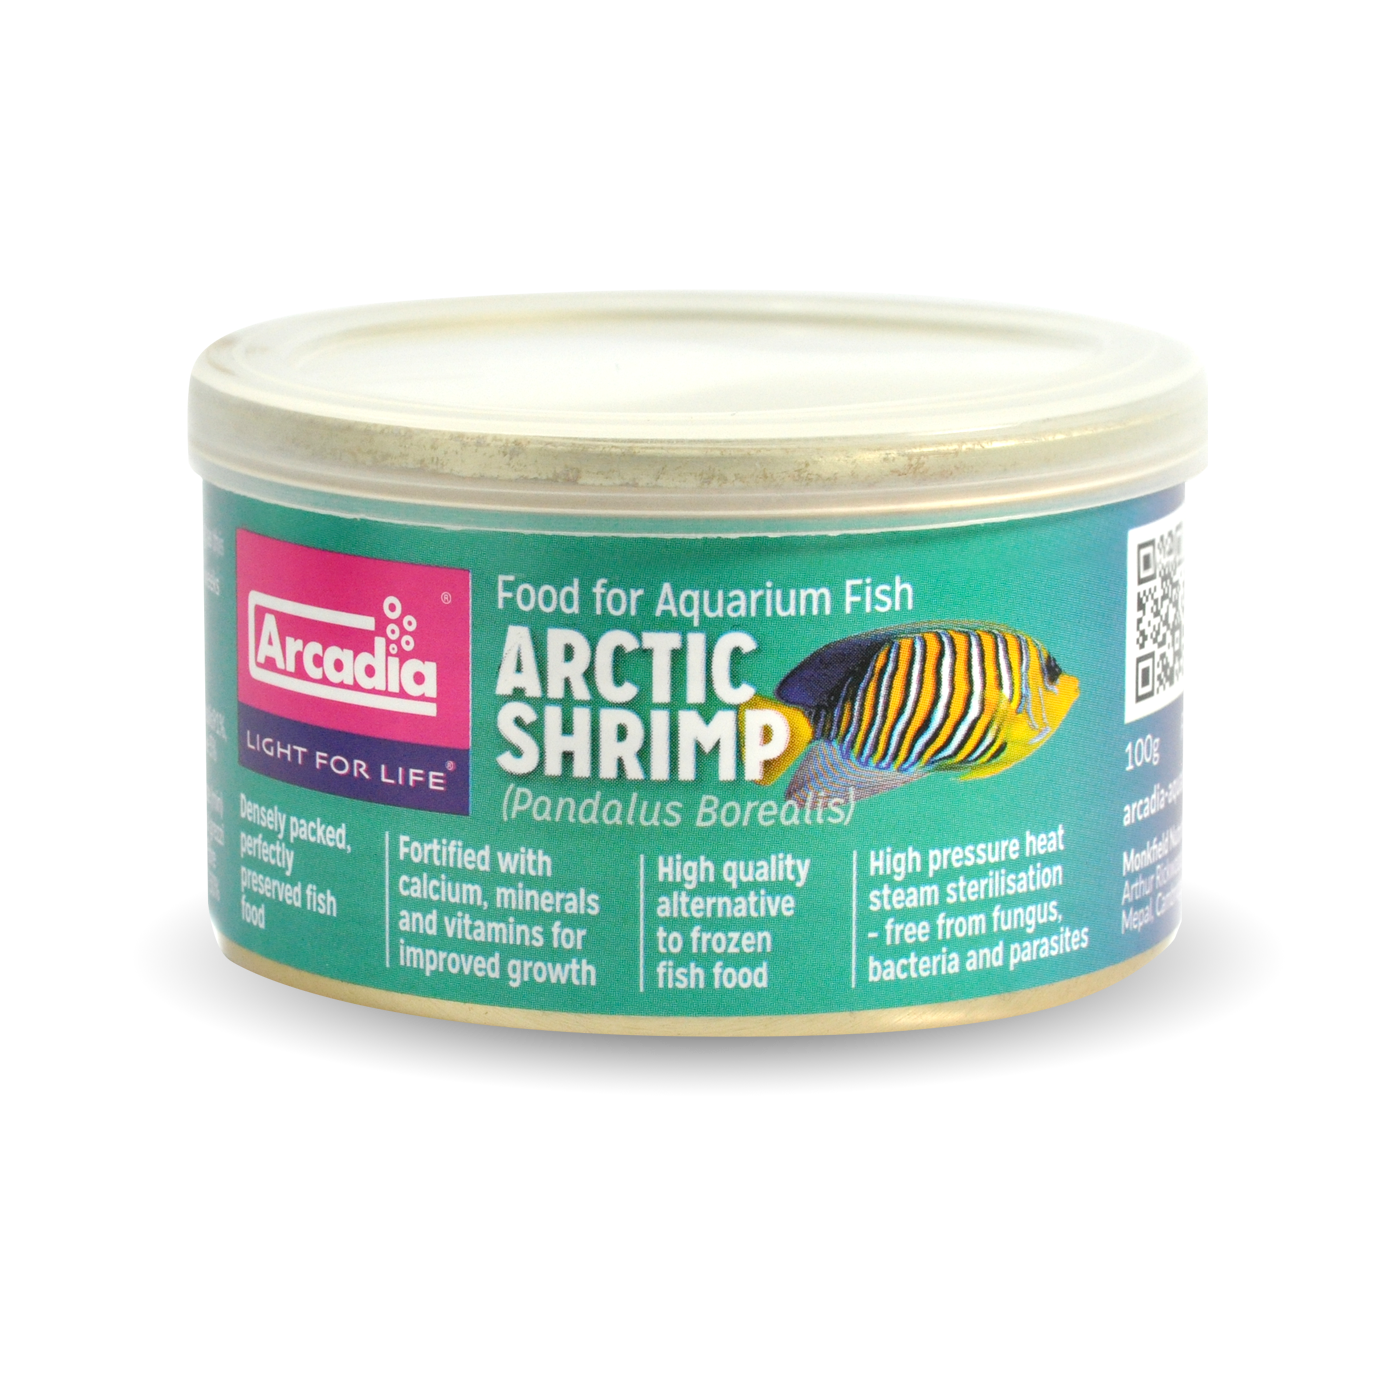 Arcadia Fish Food Tin image